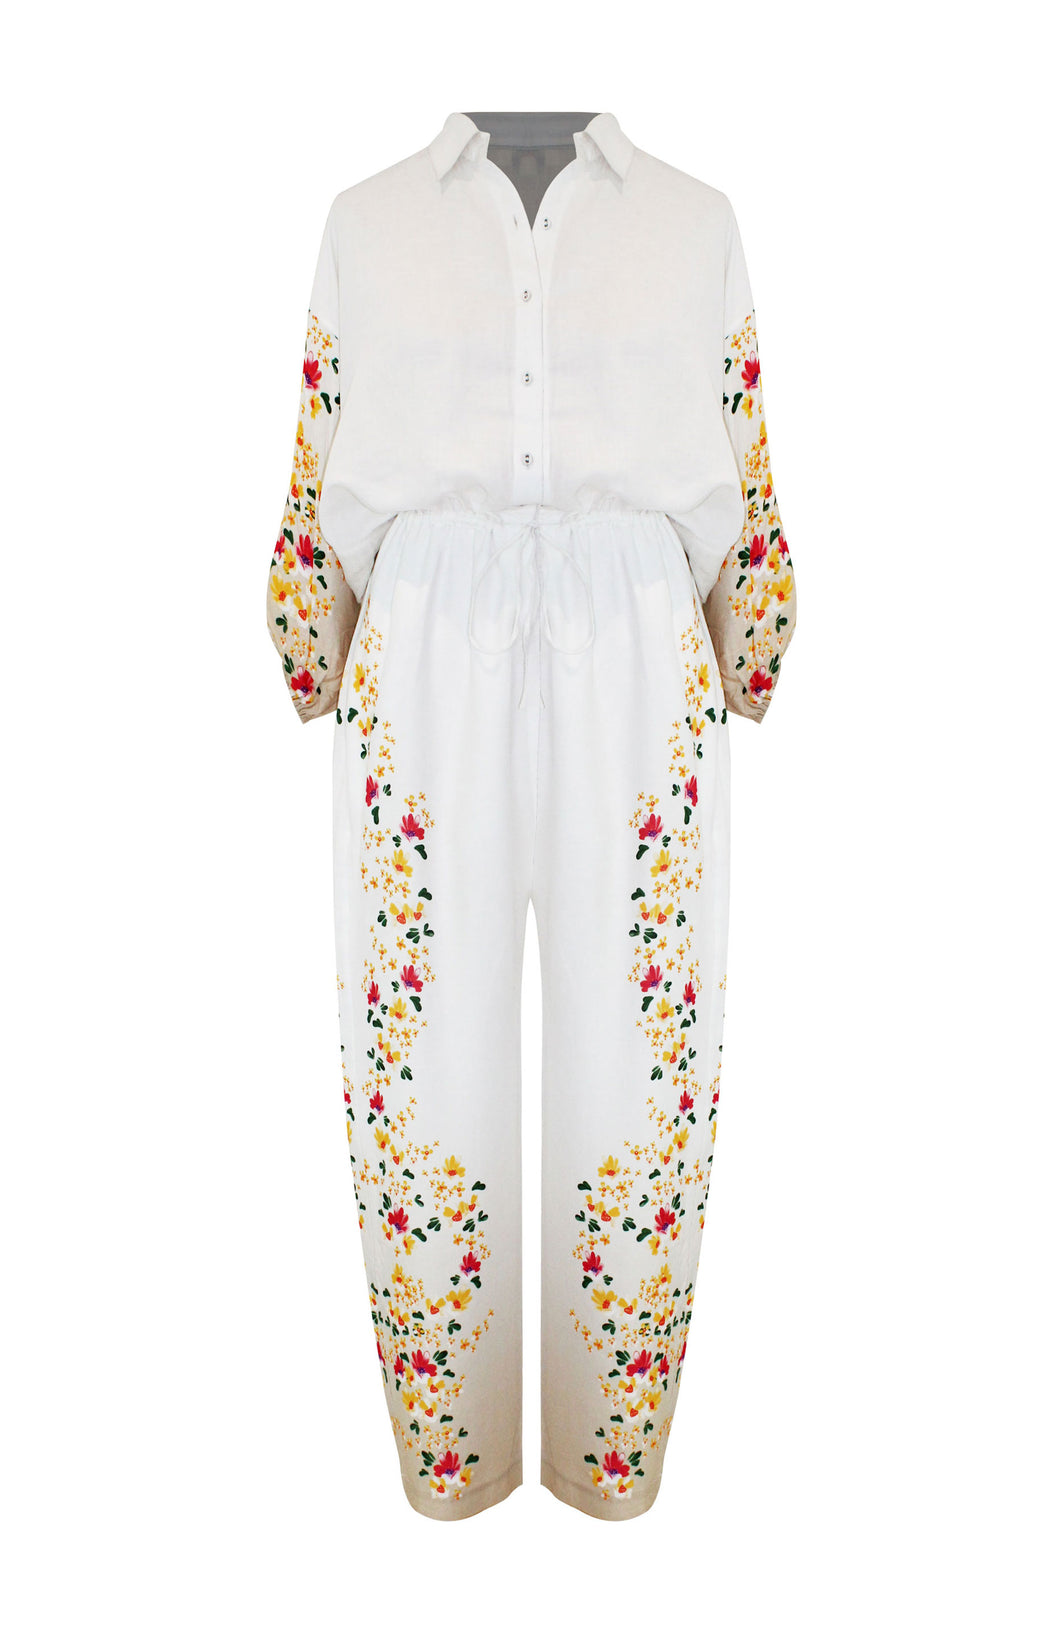 Denny Jumpsuit - All Things Mochi - beige jumpsuit with floral print (front)